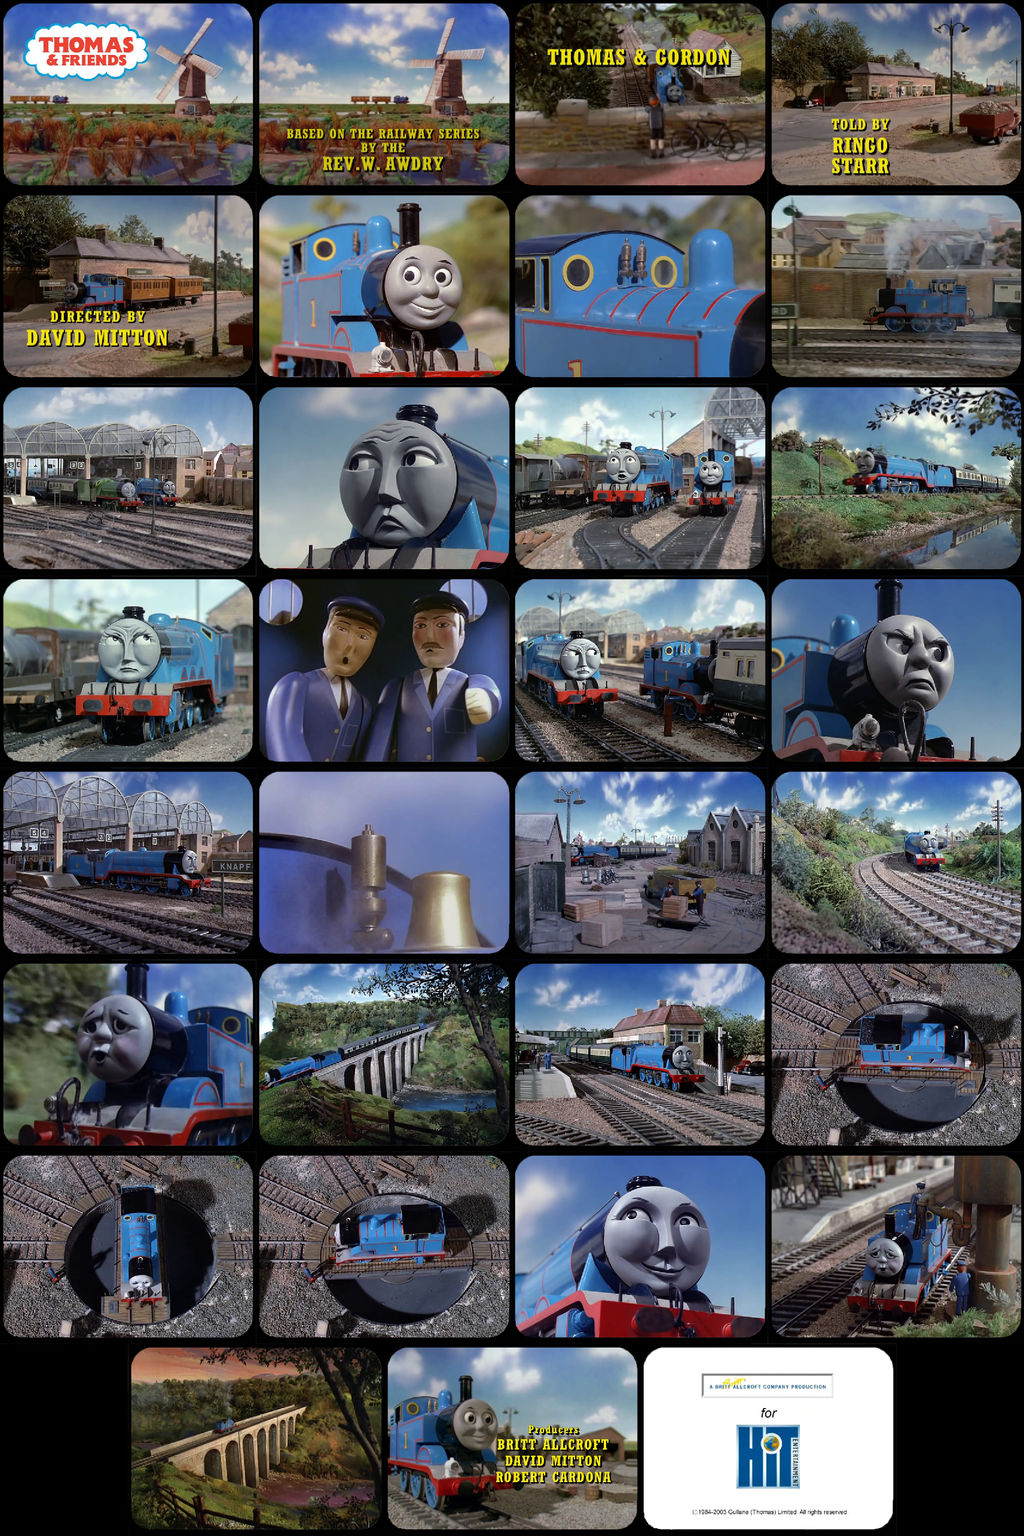 Thomas and Friends Episode 1 Tele-Snaps